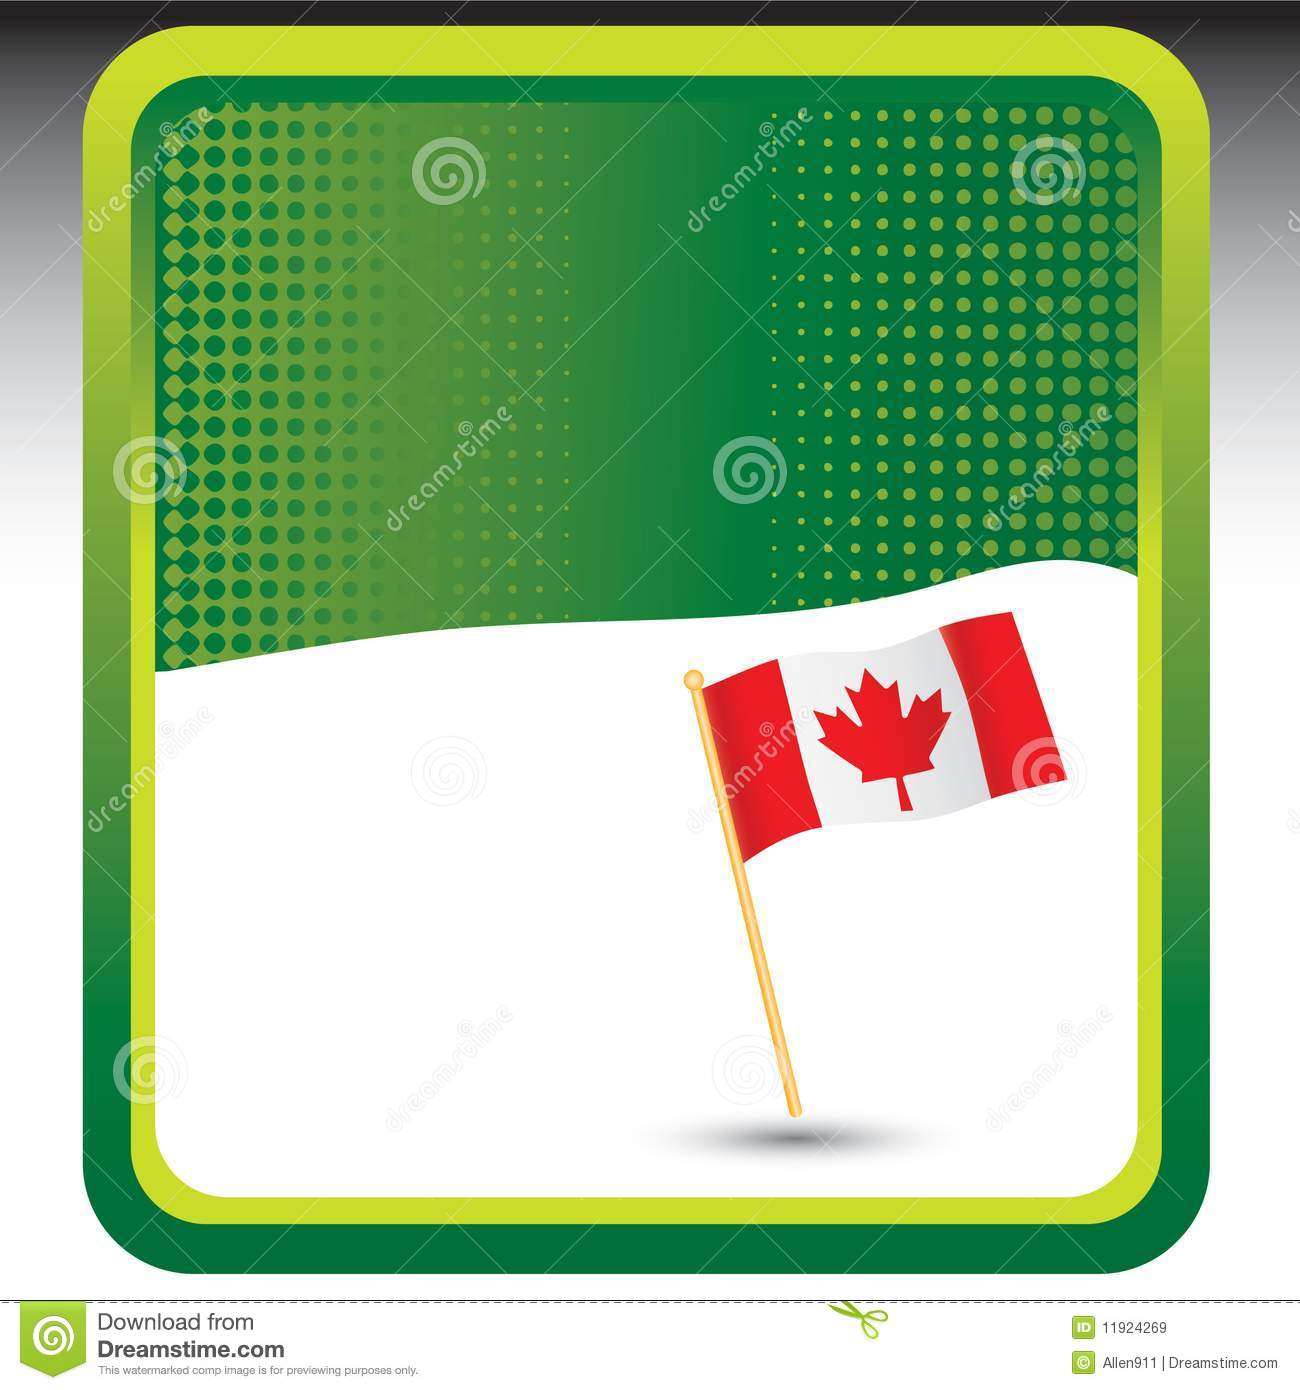 Similar stock images of canadian flag on green halftone template